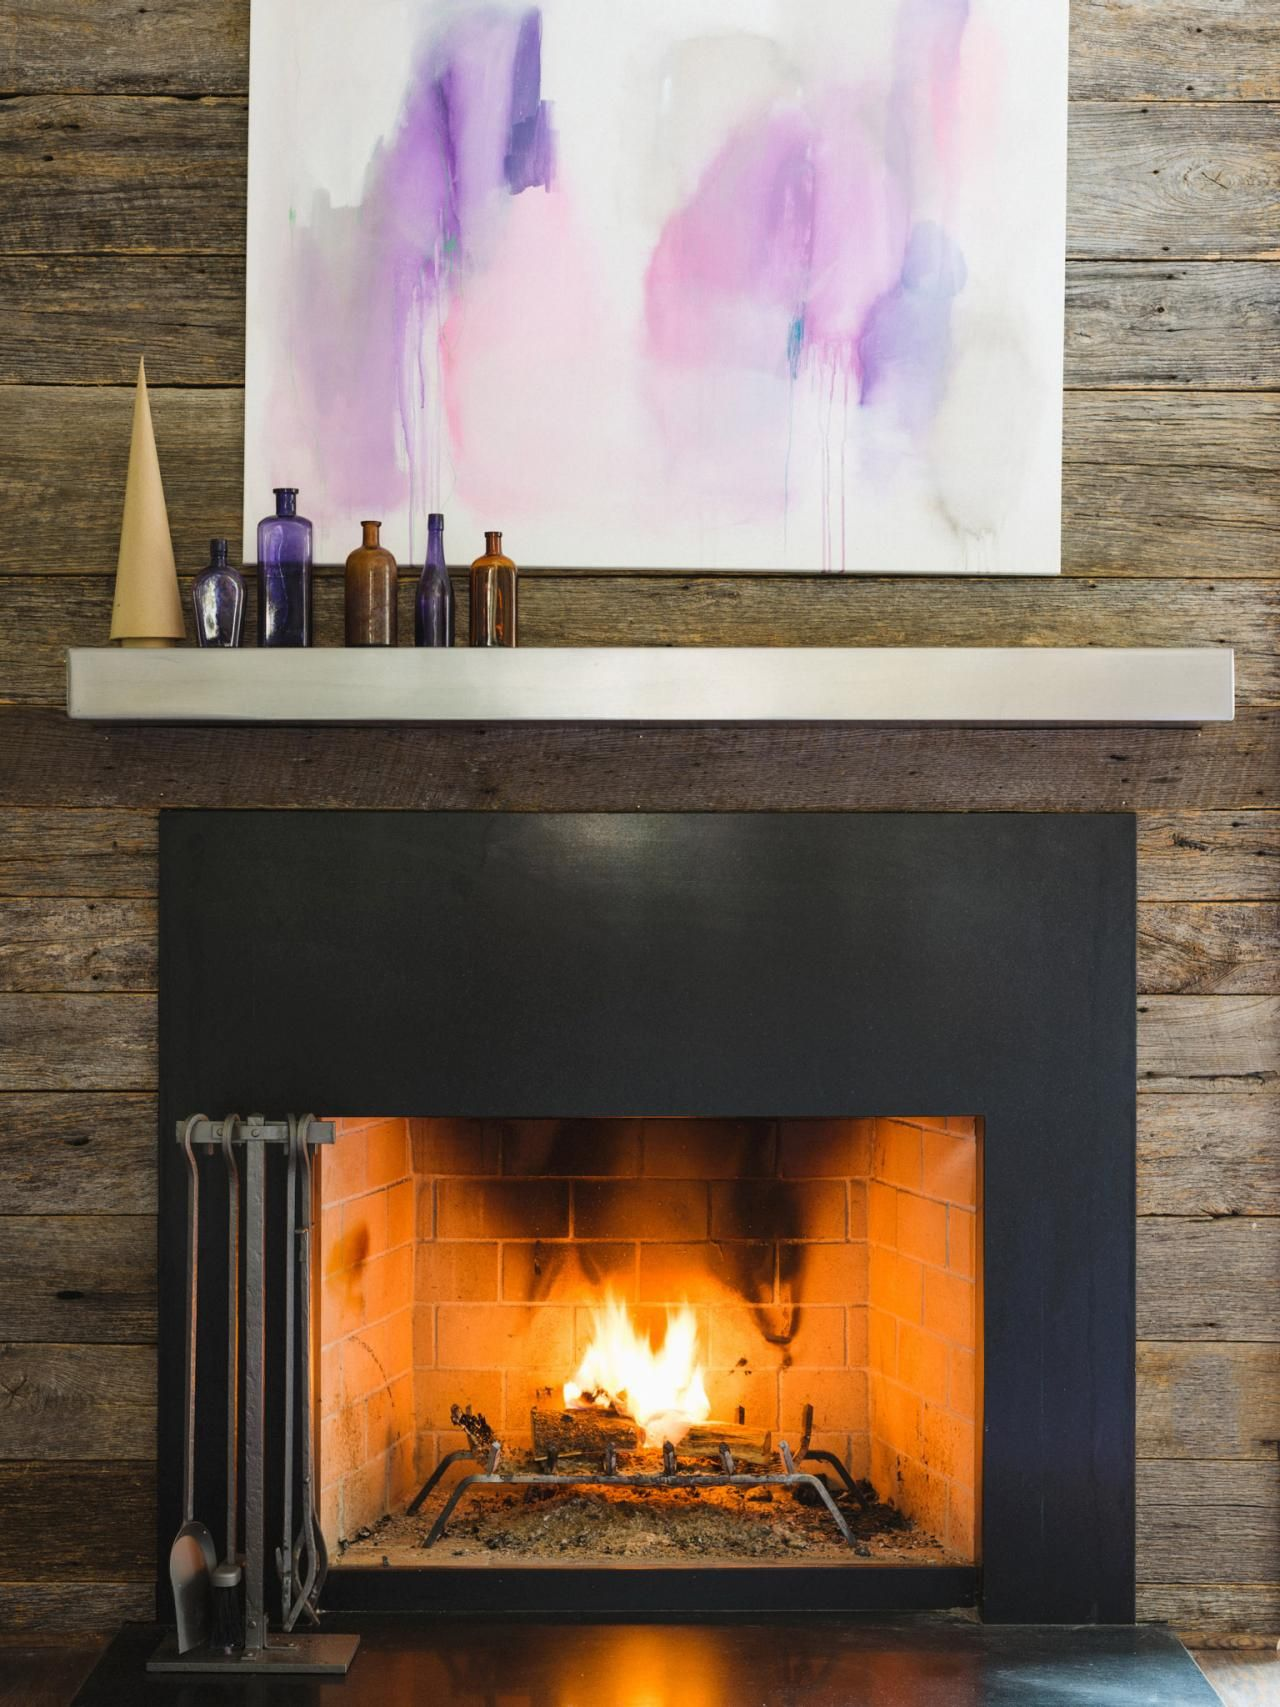 Metal Fireplace Mantel New Choosing A Fireplace Mantel which Look is Right for You